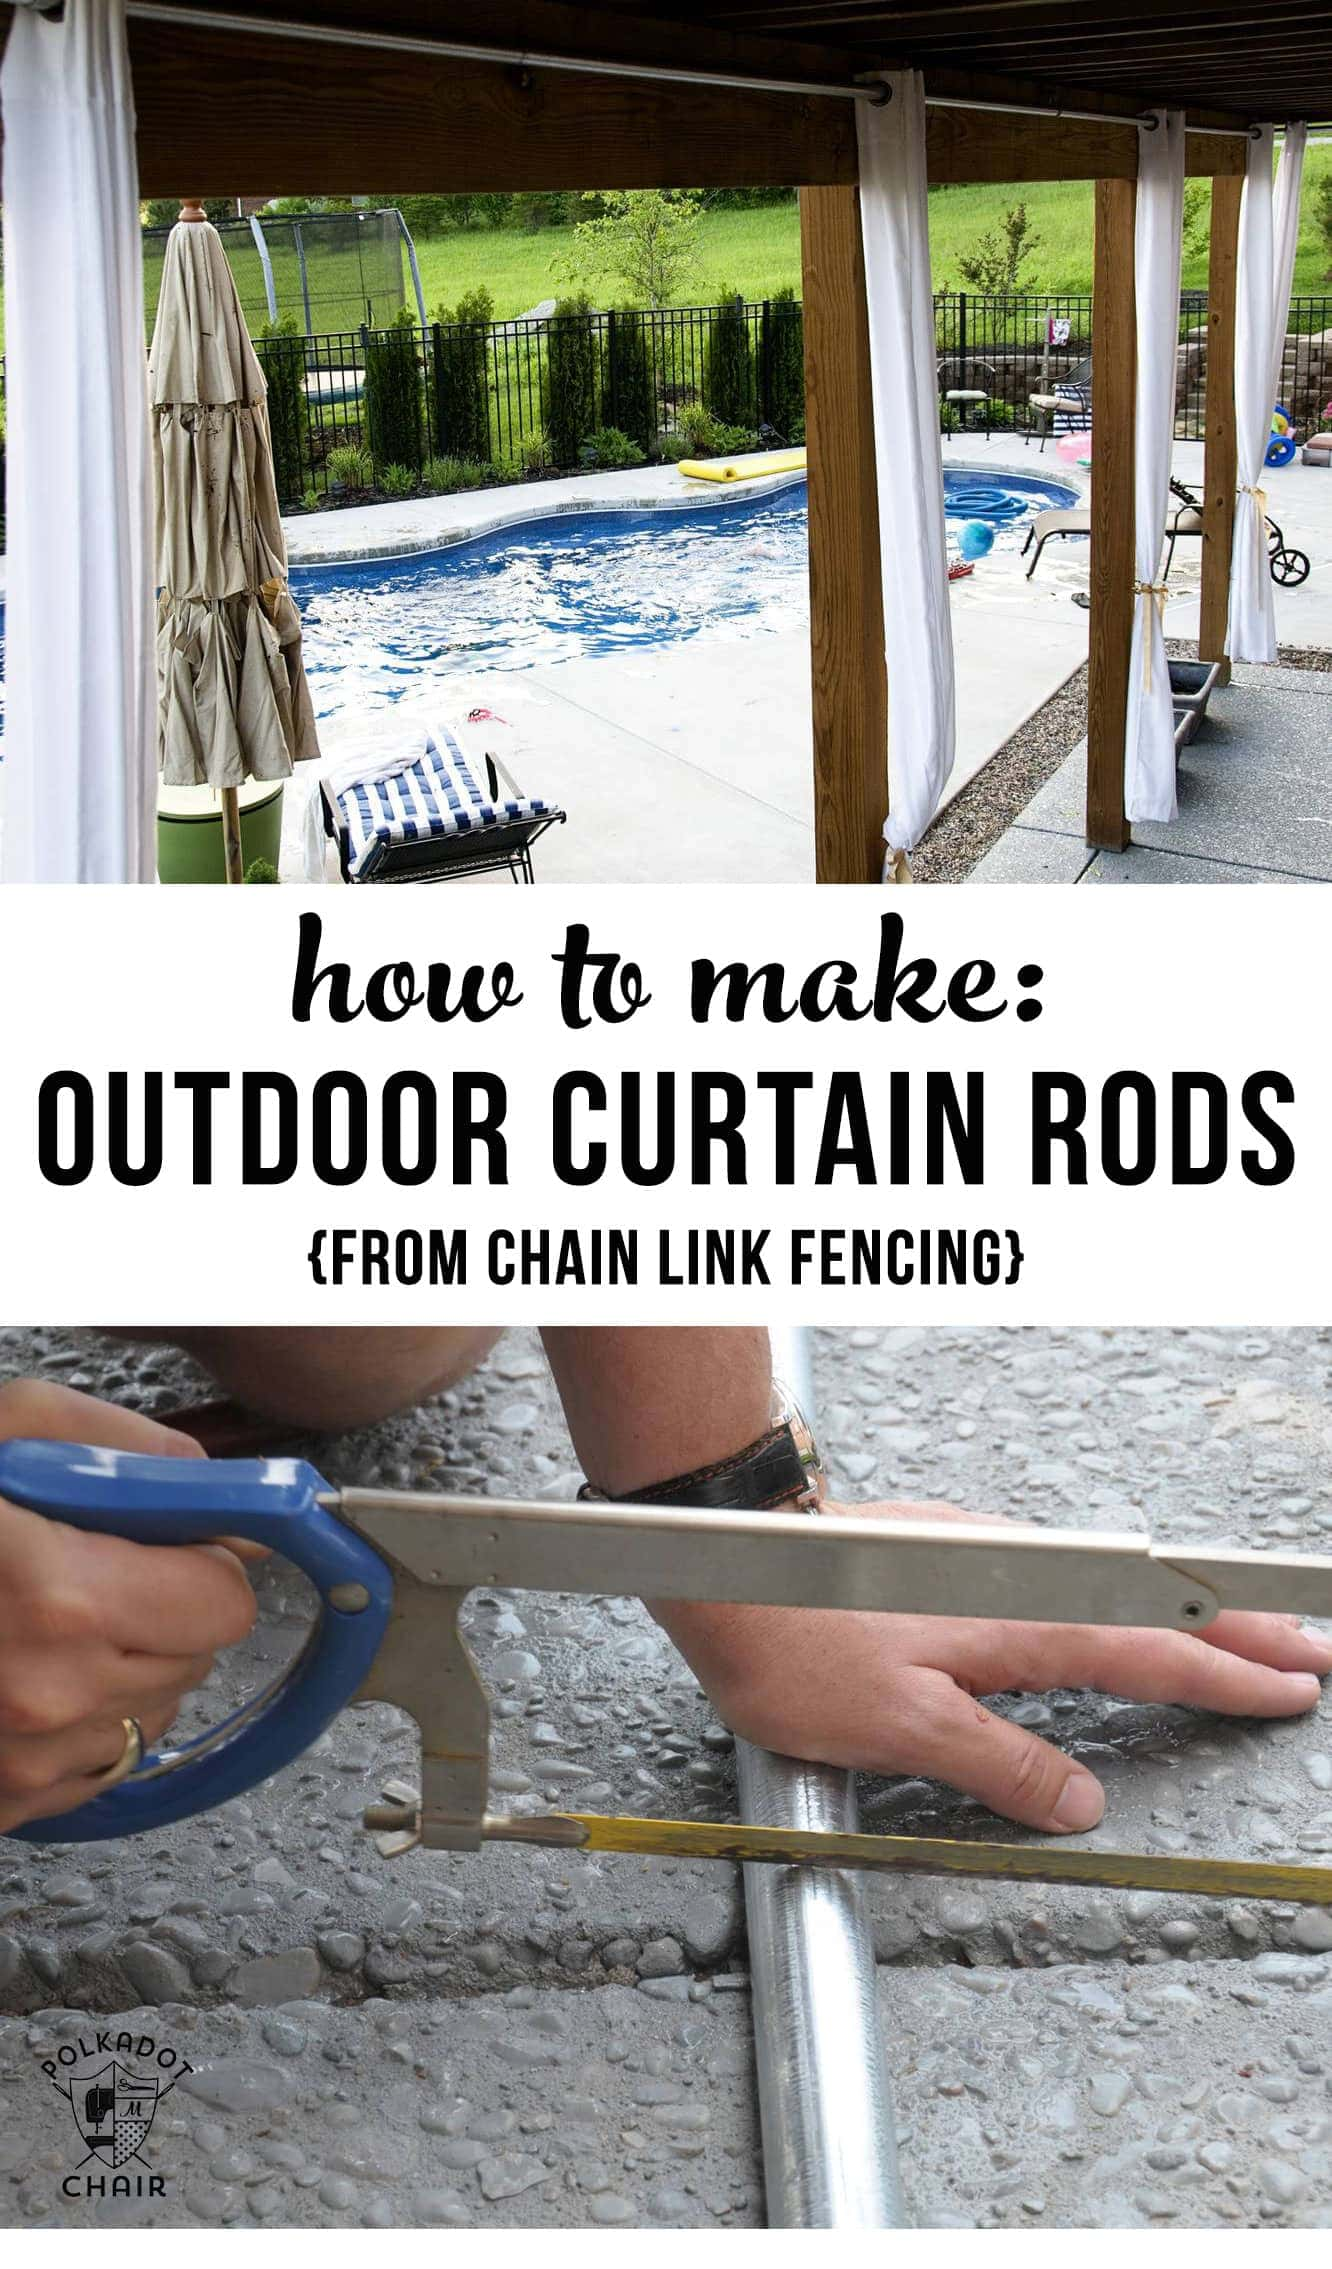 outdoor patio chair armless ghost how to hang curtains & diy curtain rods - the polka dot